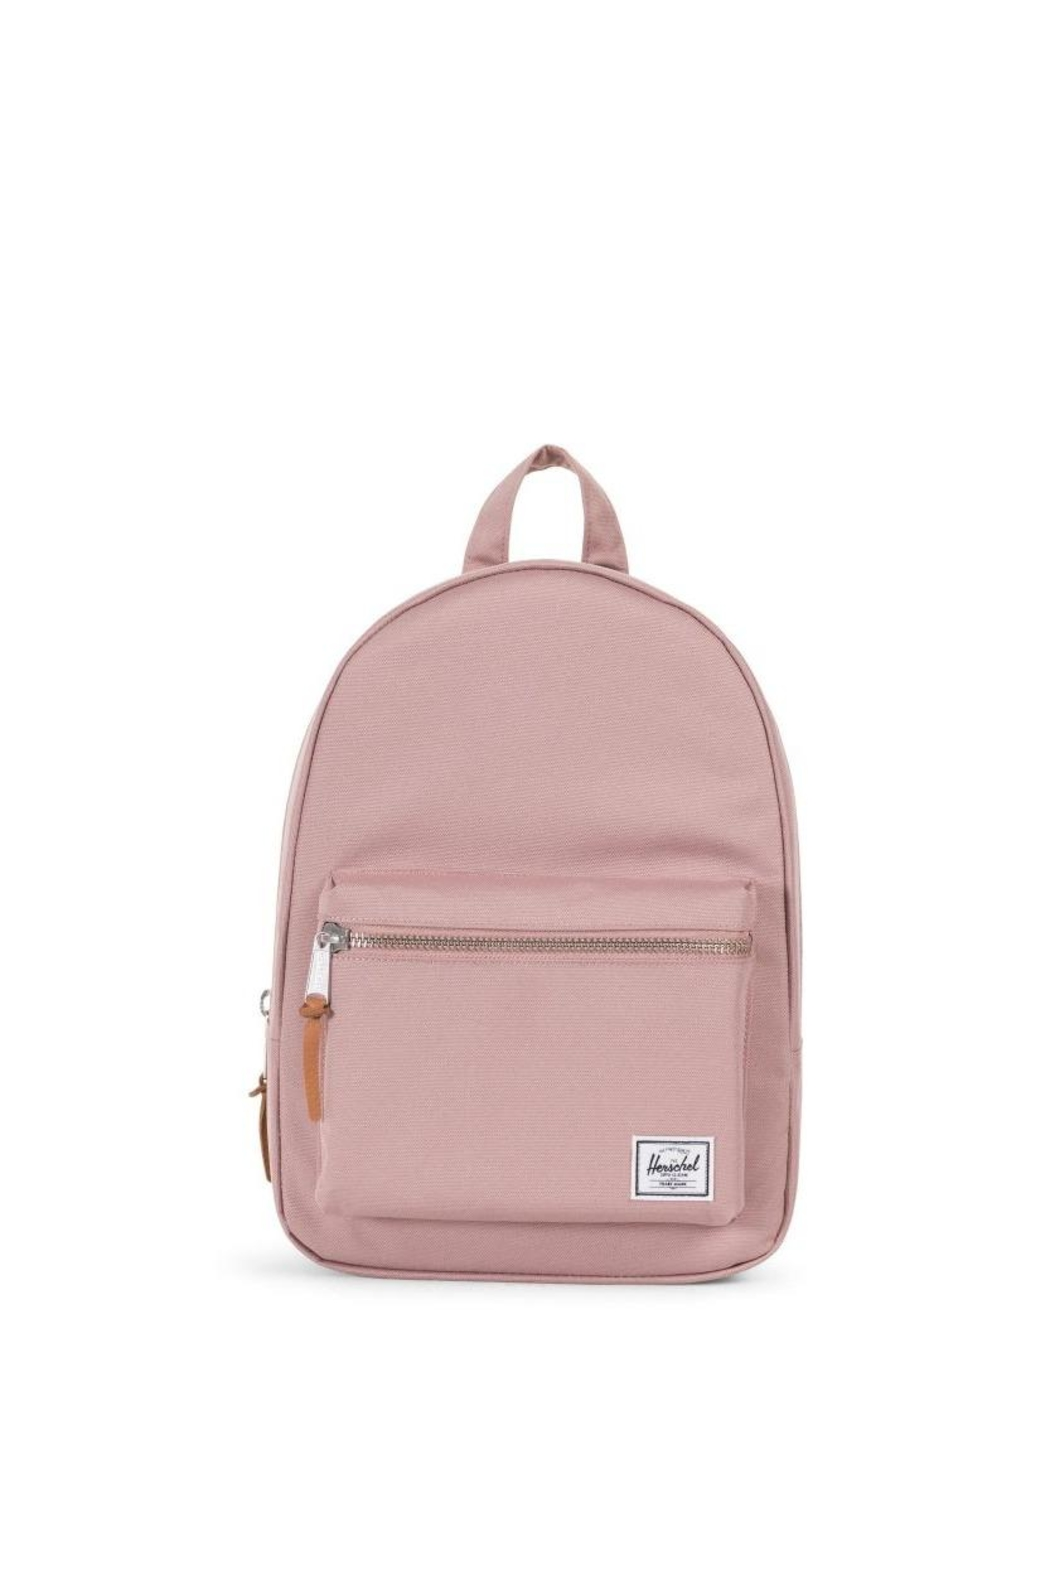 Herschel Supply Co. Small Pink Backpack - Main Image